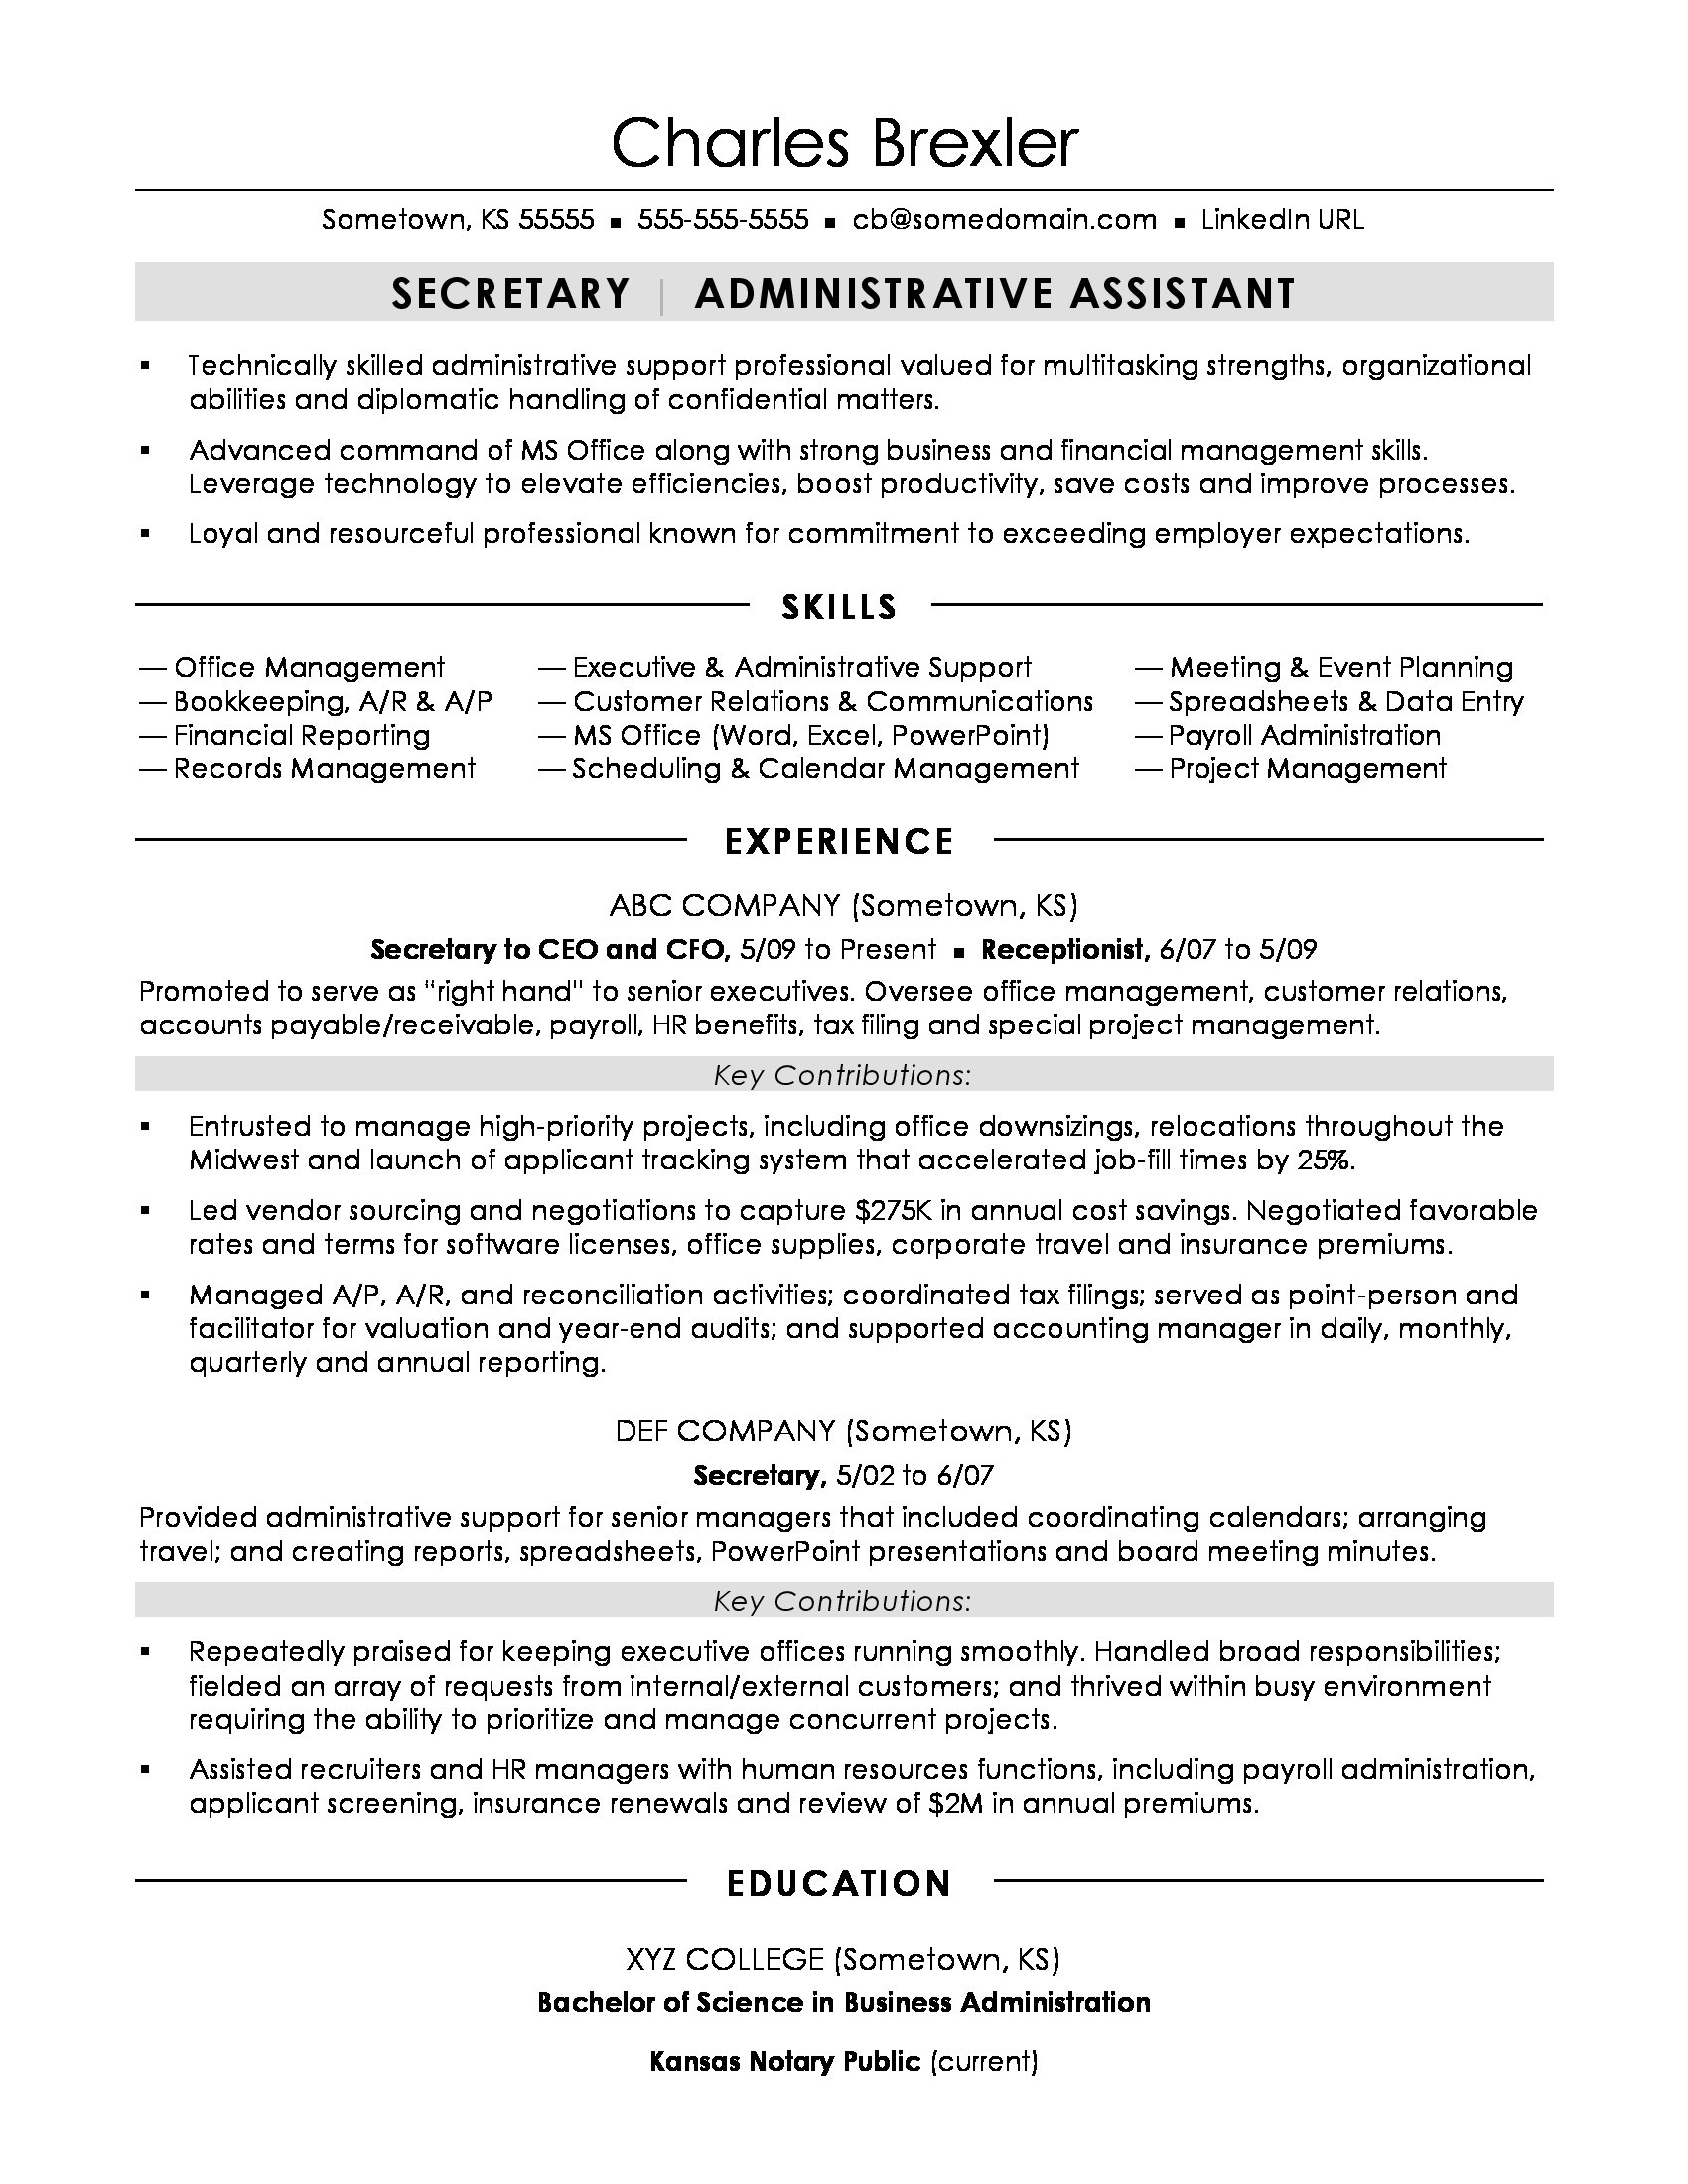 secretary resume sample monster personal assistant job duties for professional Resume Personal Assistant Job Duties For Resume